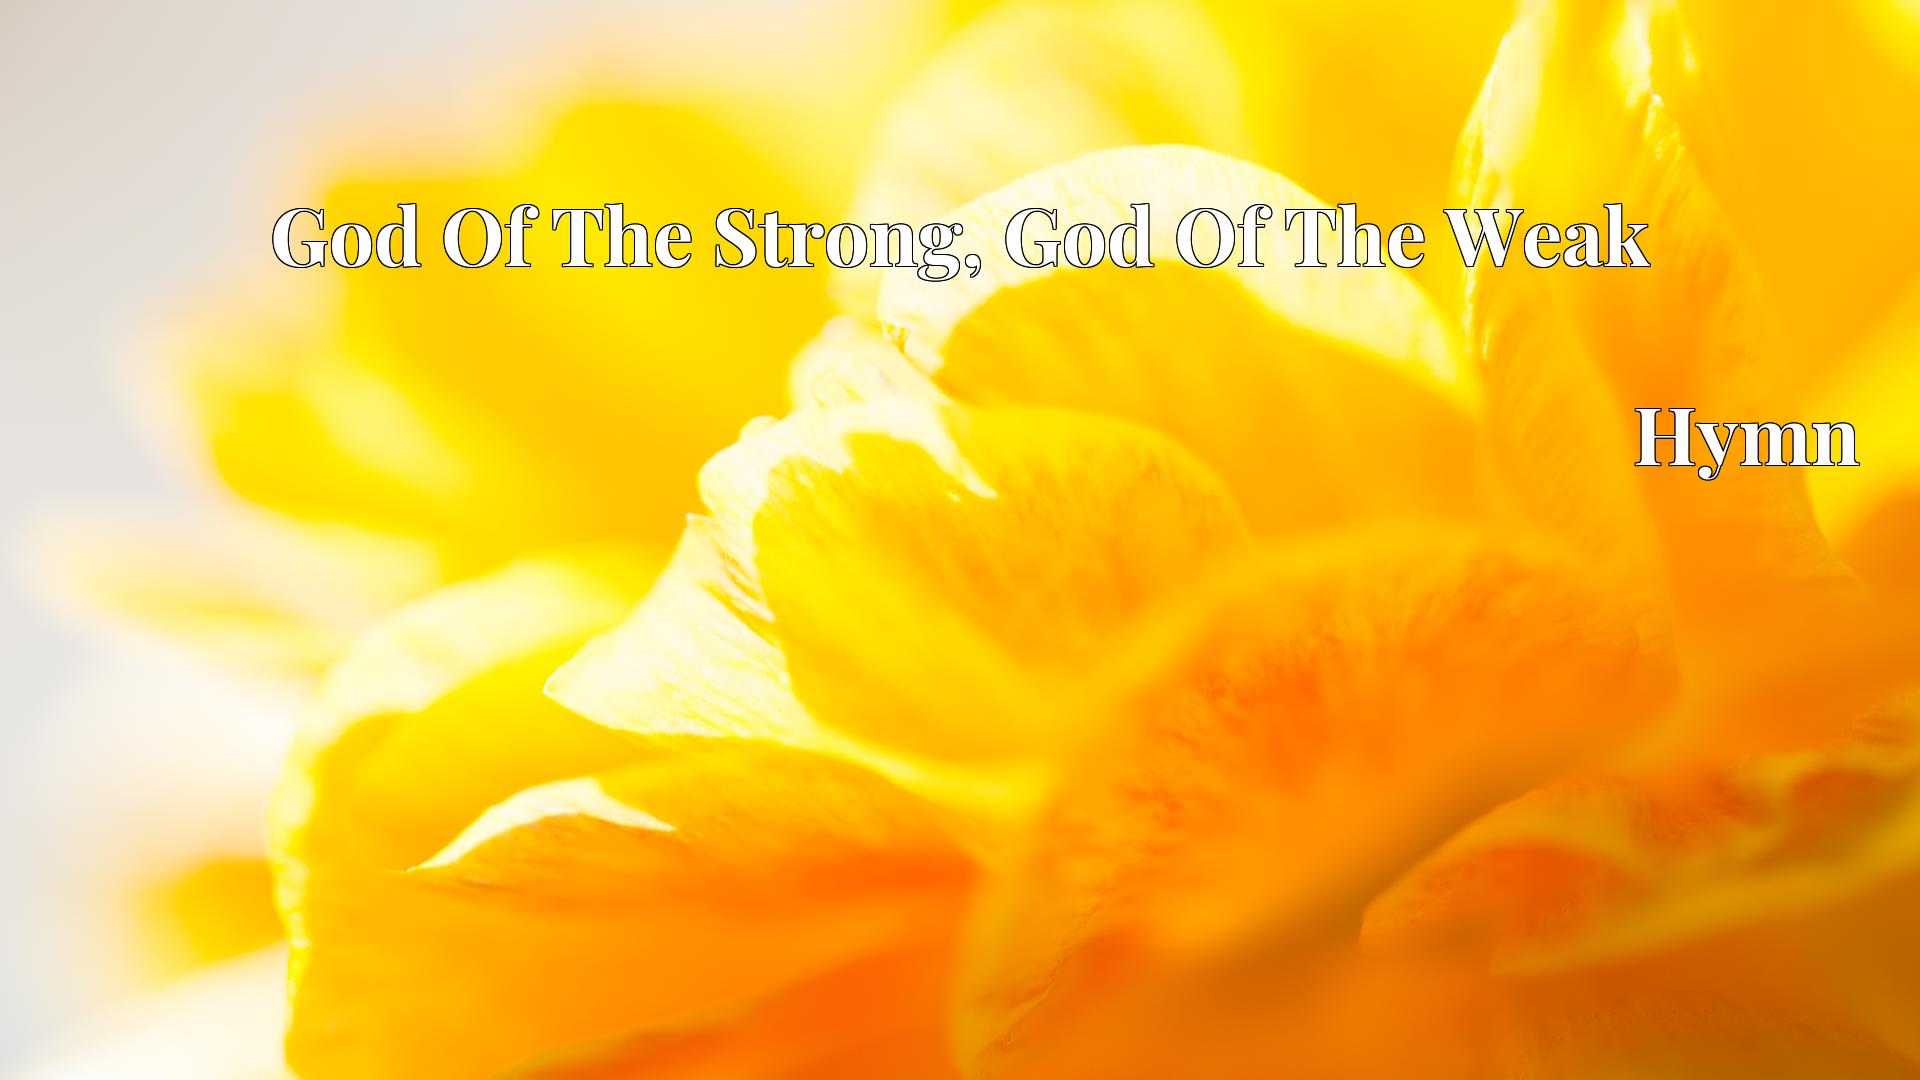 God Of The Strong, God Of The Weak - Hymn